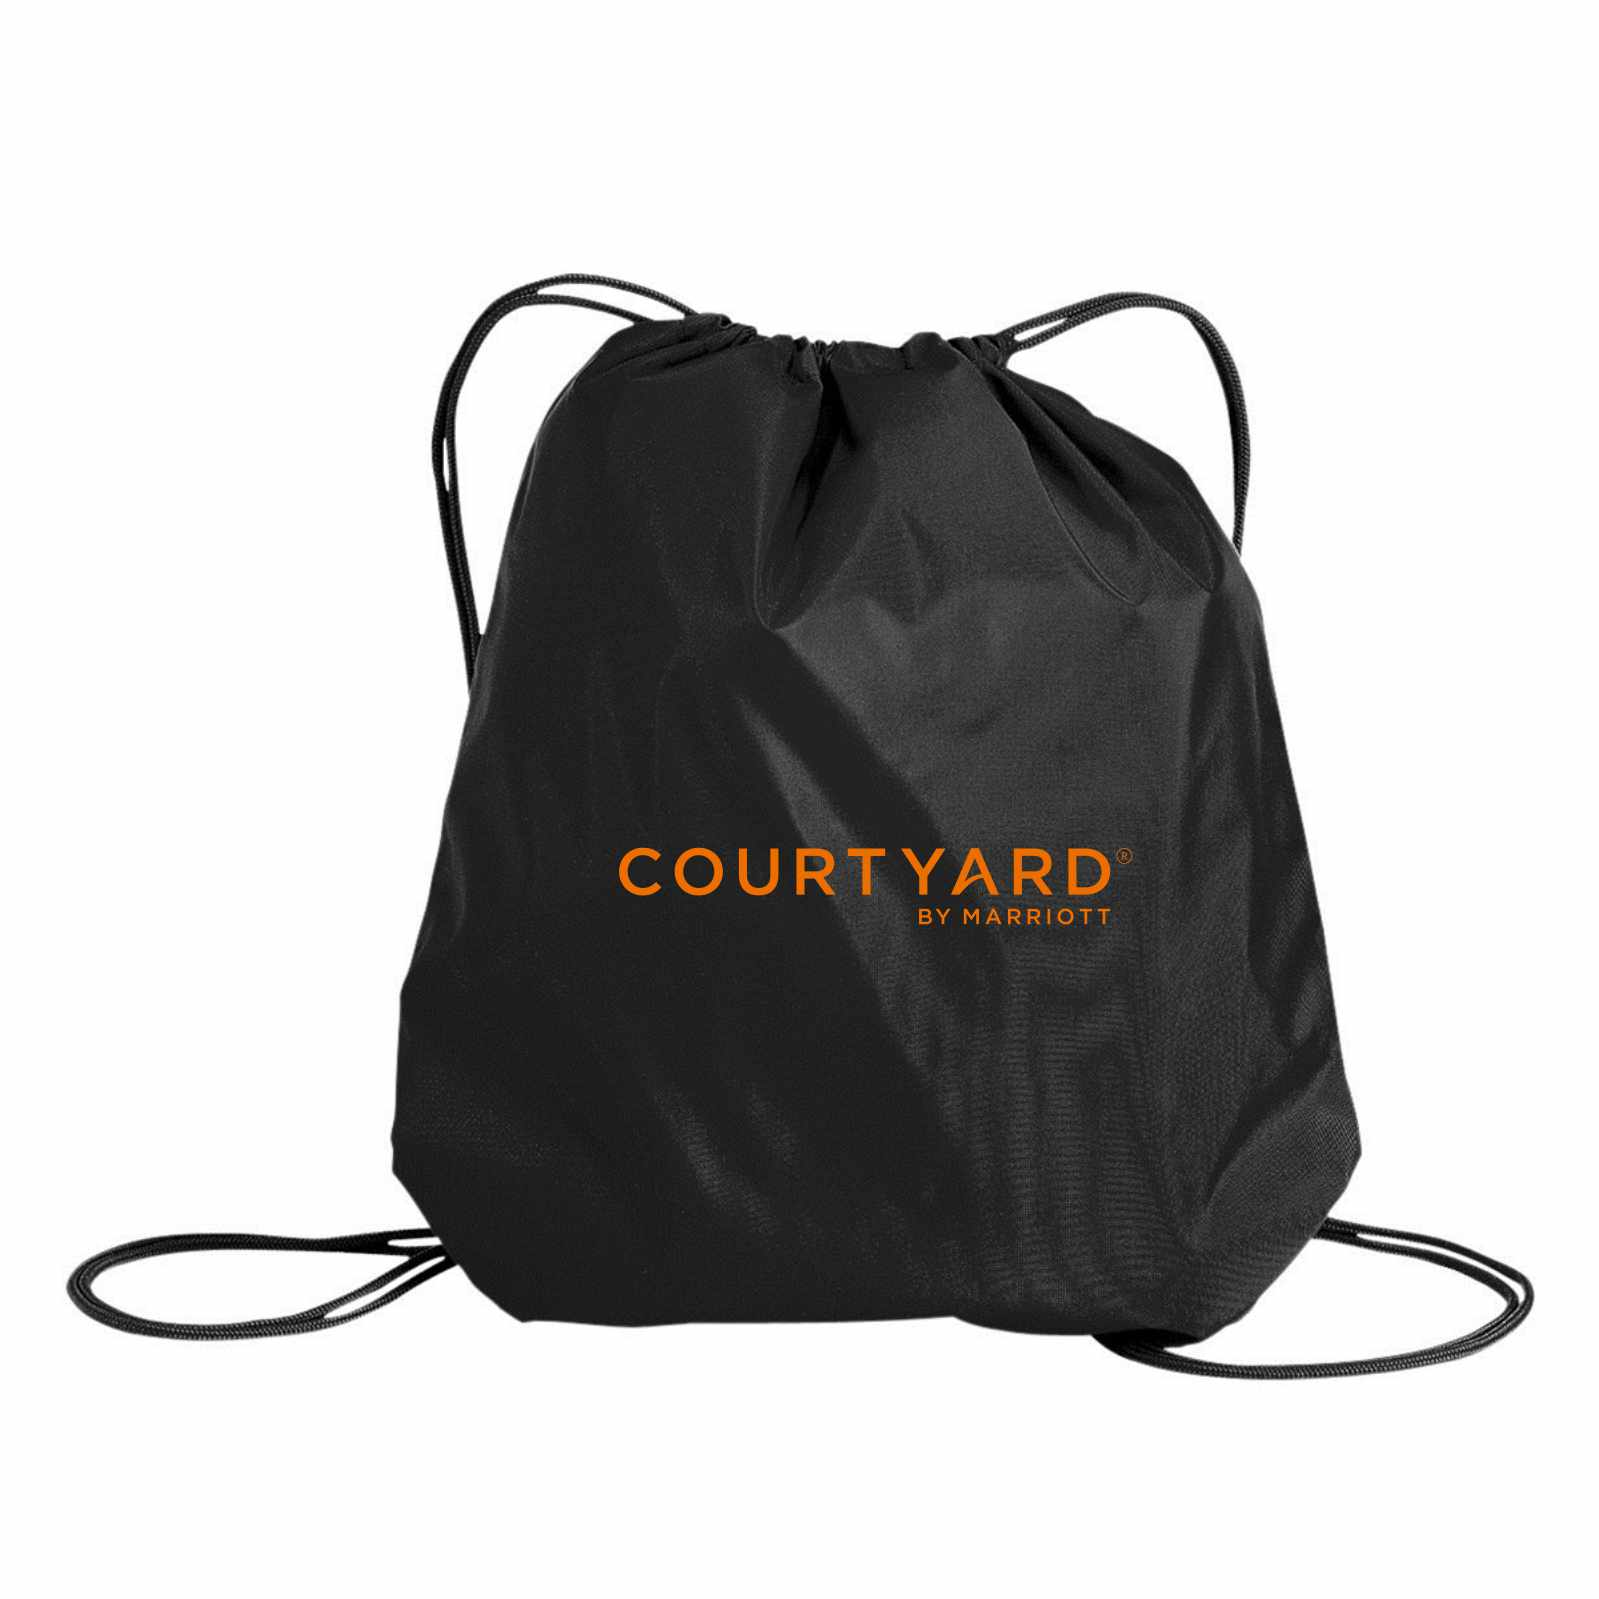 "Drawstring Cinch Packs! 16.5""H x 14.5""W - Made of Strong 210-Denier Polyester - PVC Free"